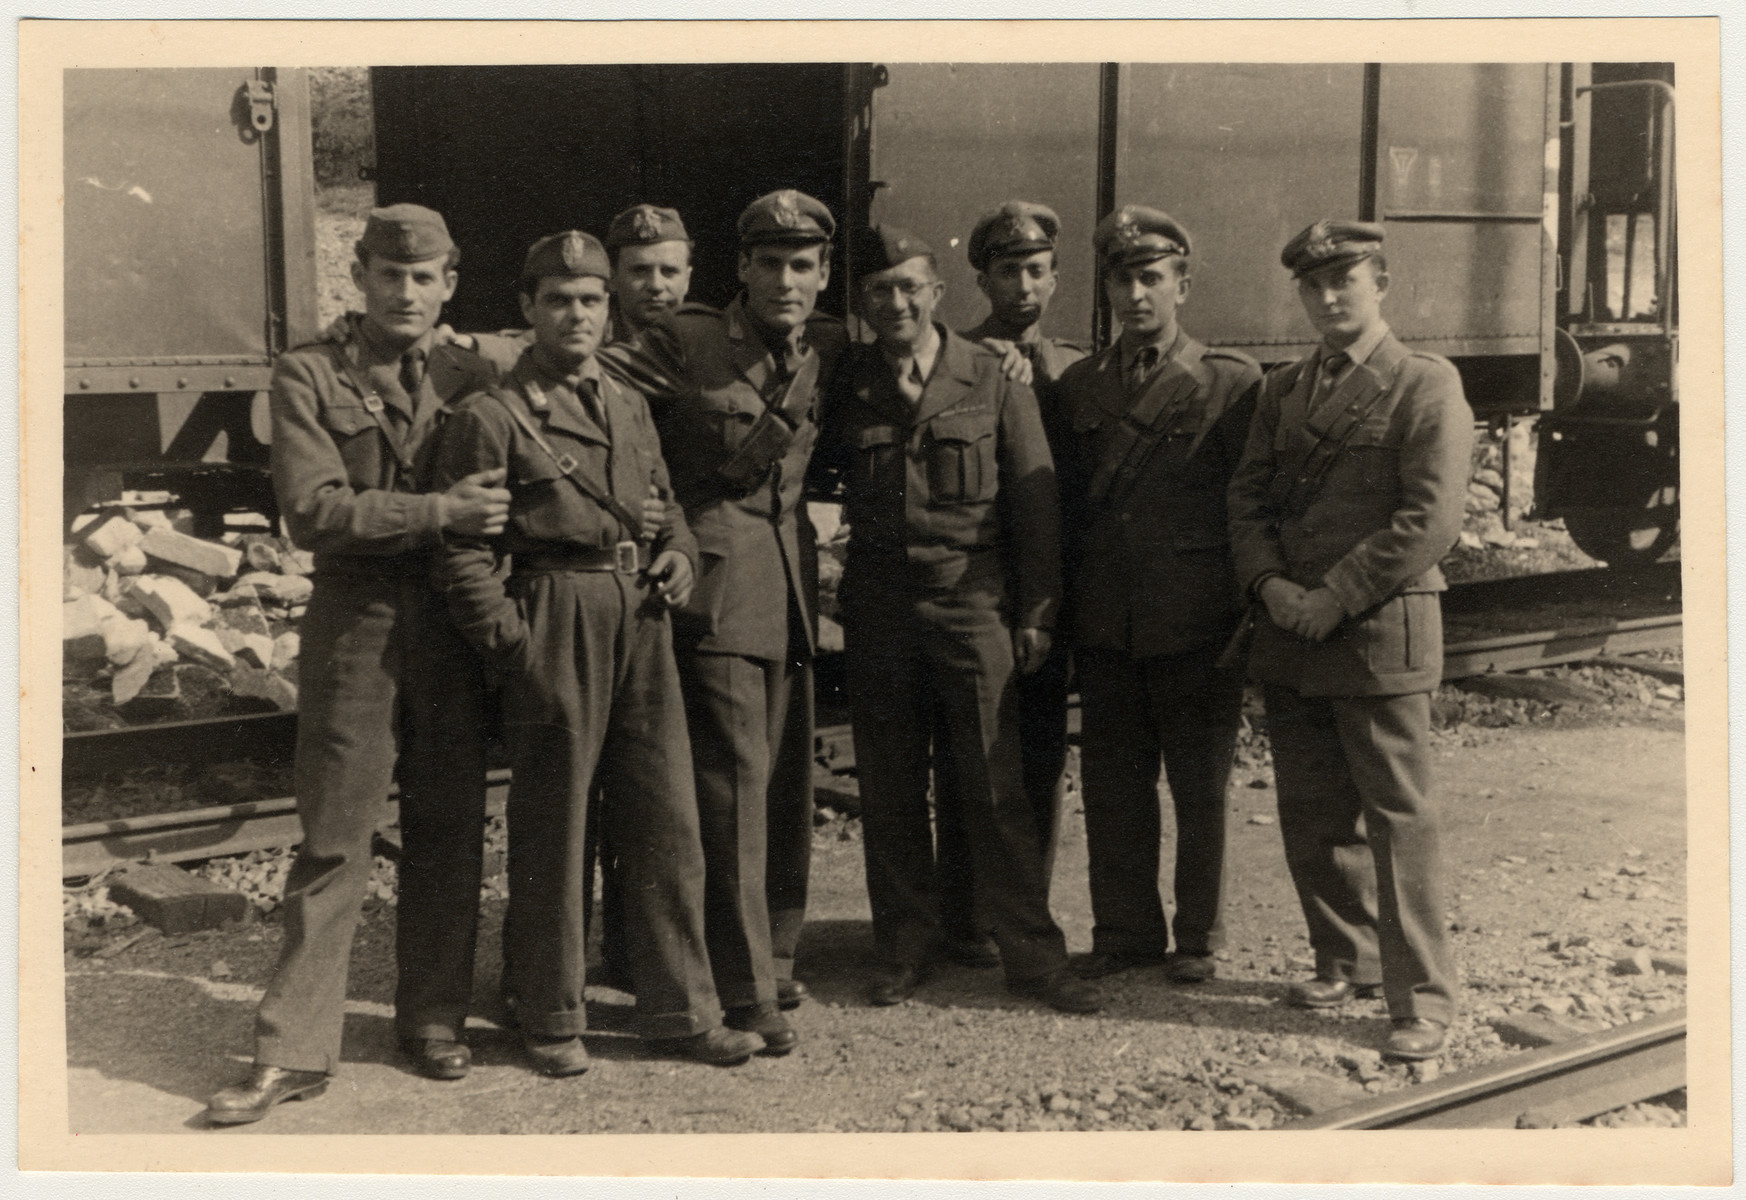 Group portrait of repatriation train guards.